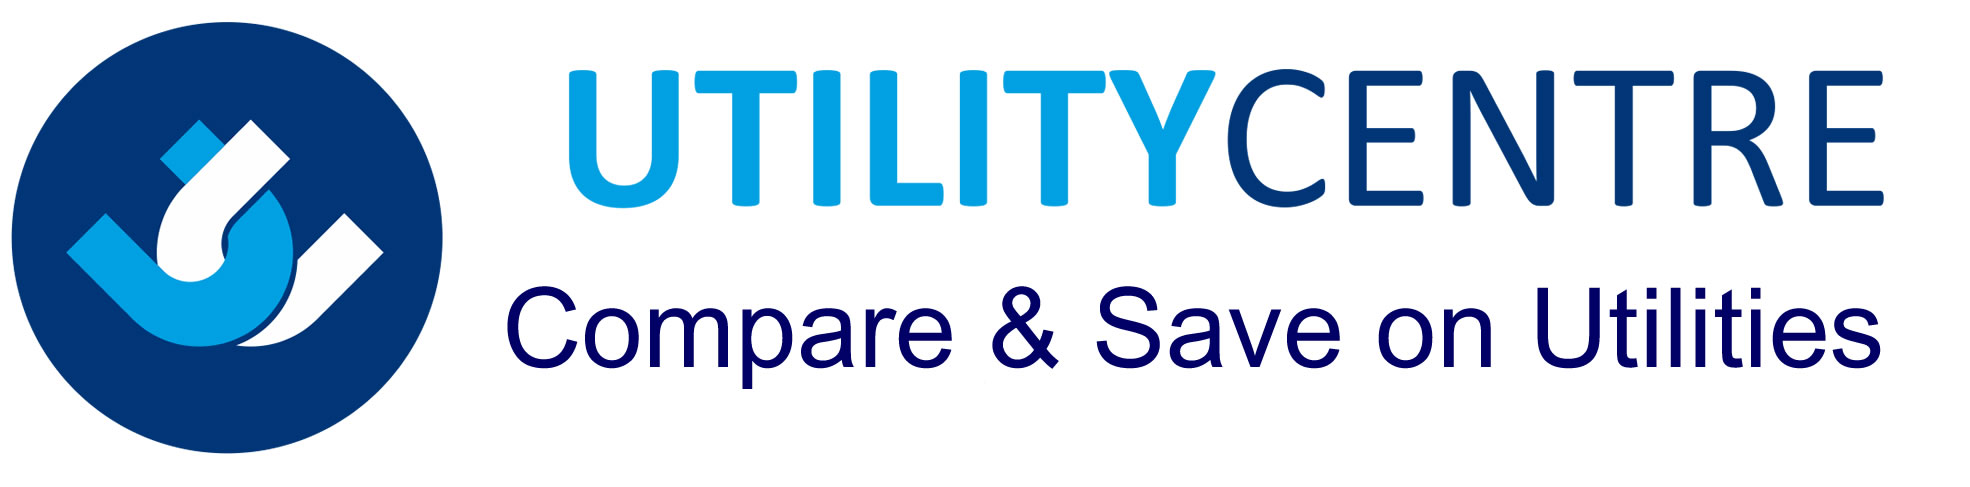 utilitycentre.co.uk